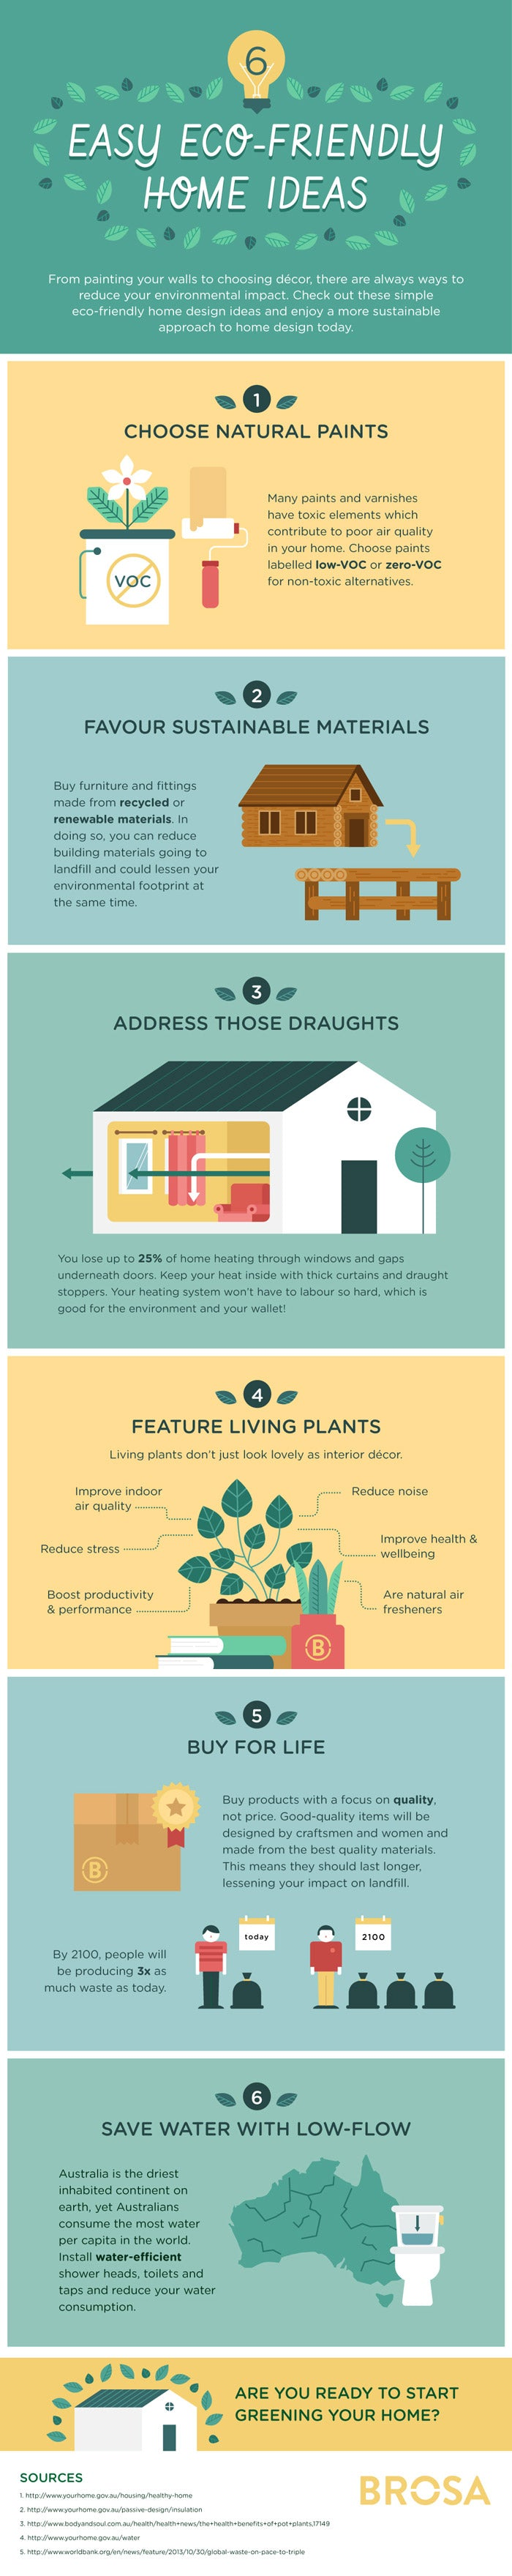 Easy Eco-Friendly Design Ideas & Tips for the Home